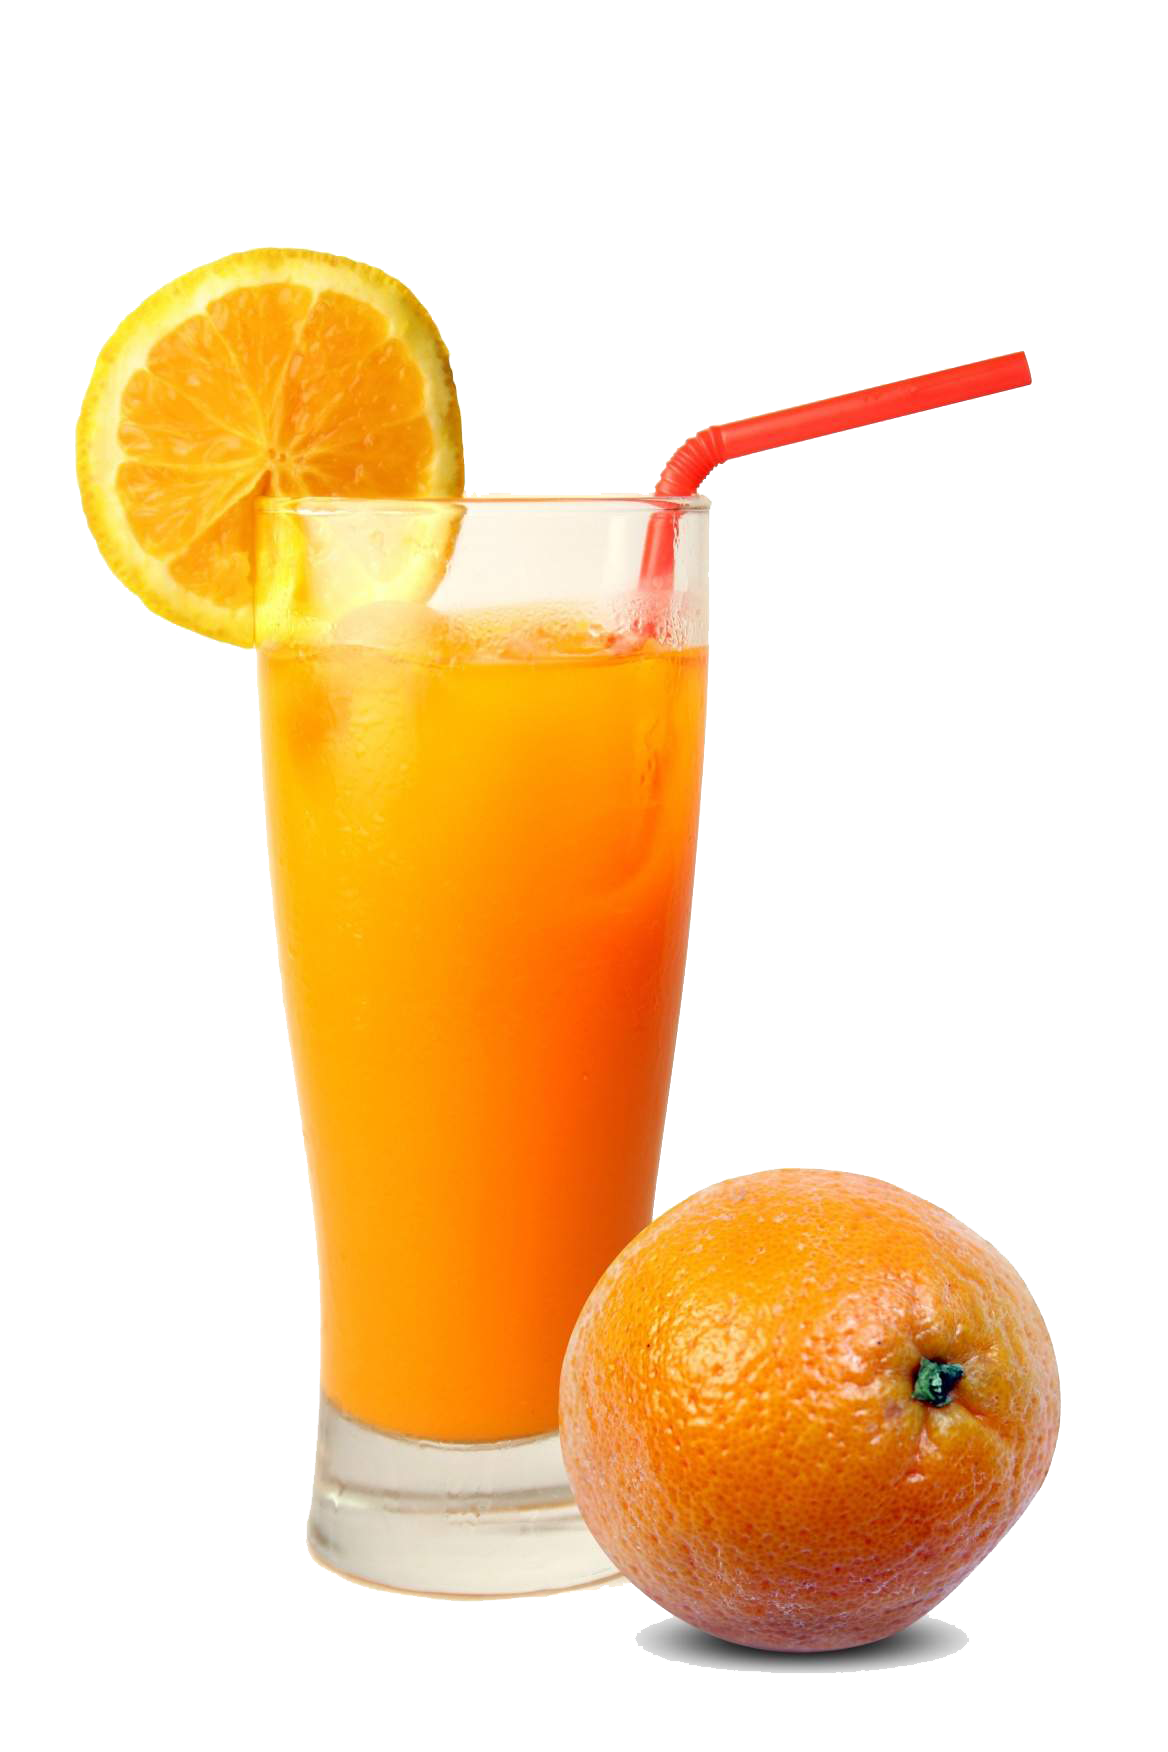 Glass of juice png. With orange free icons